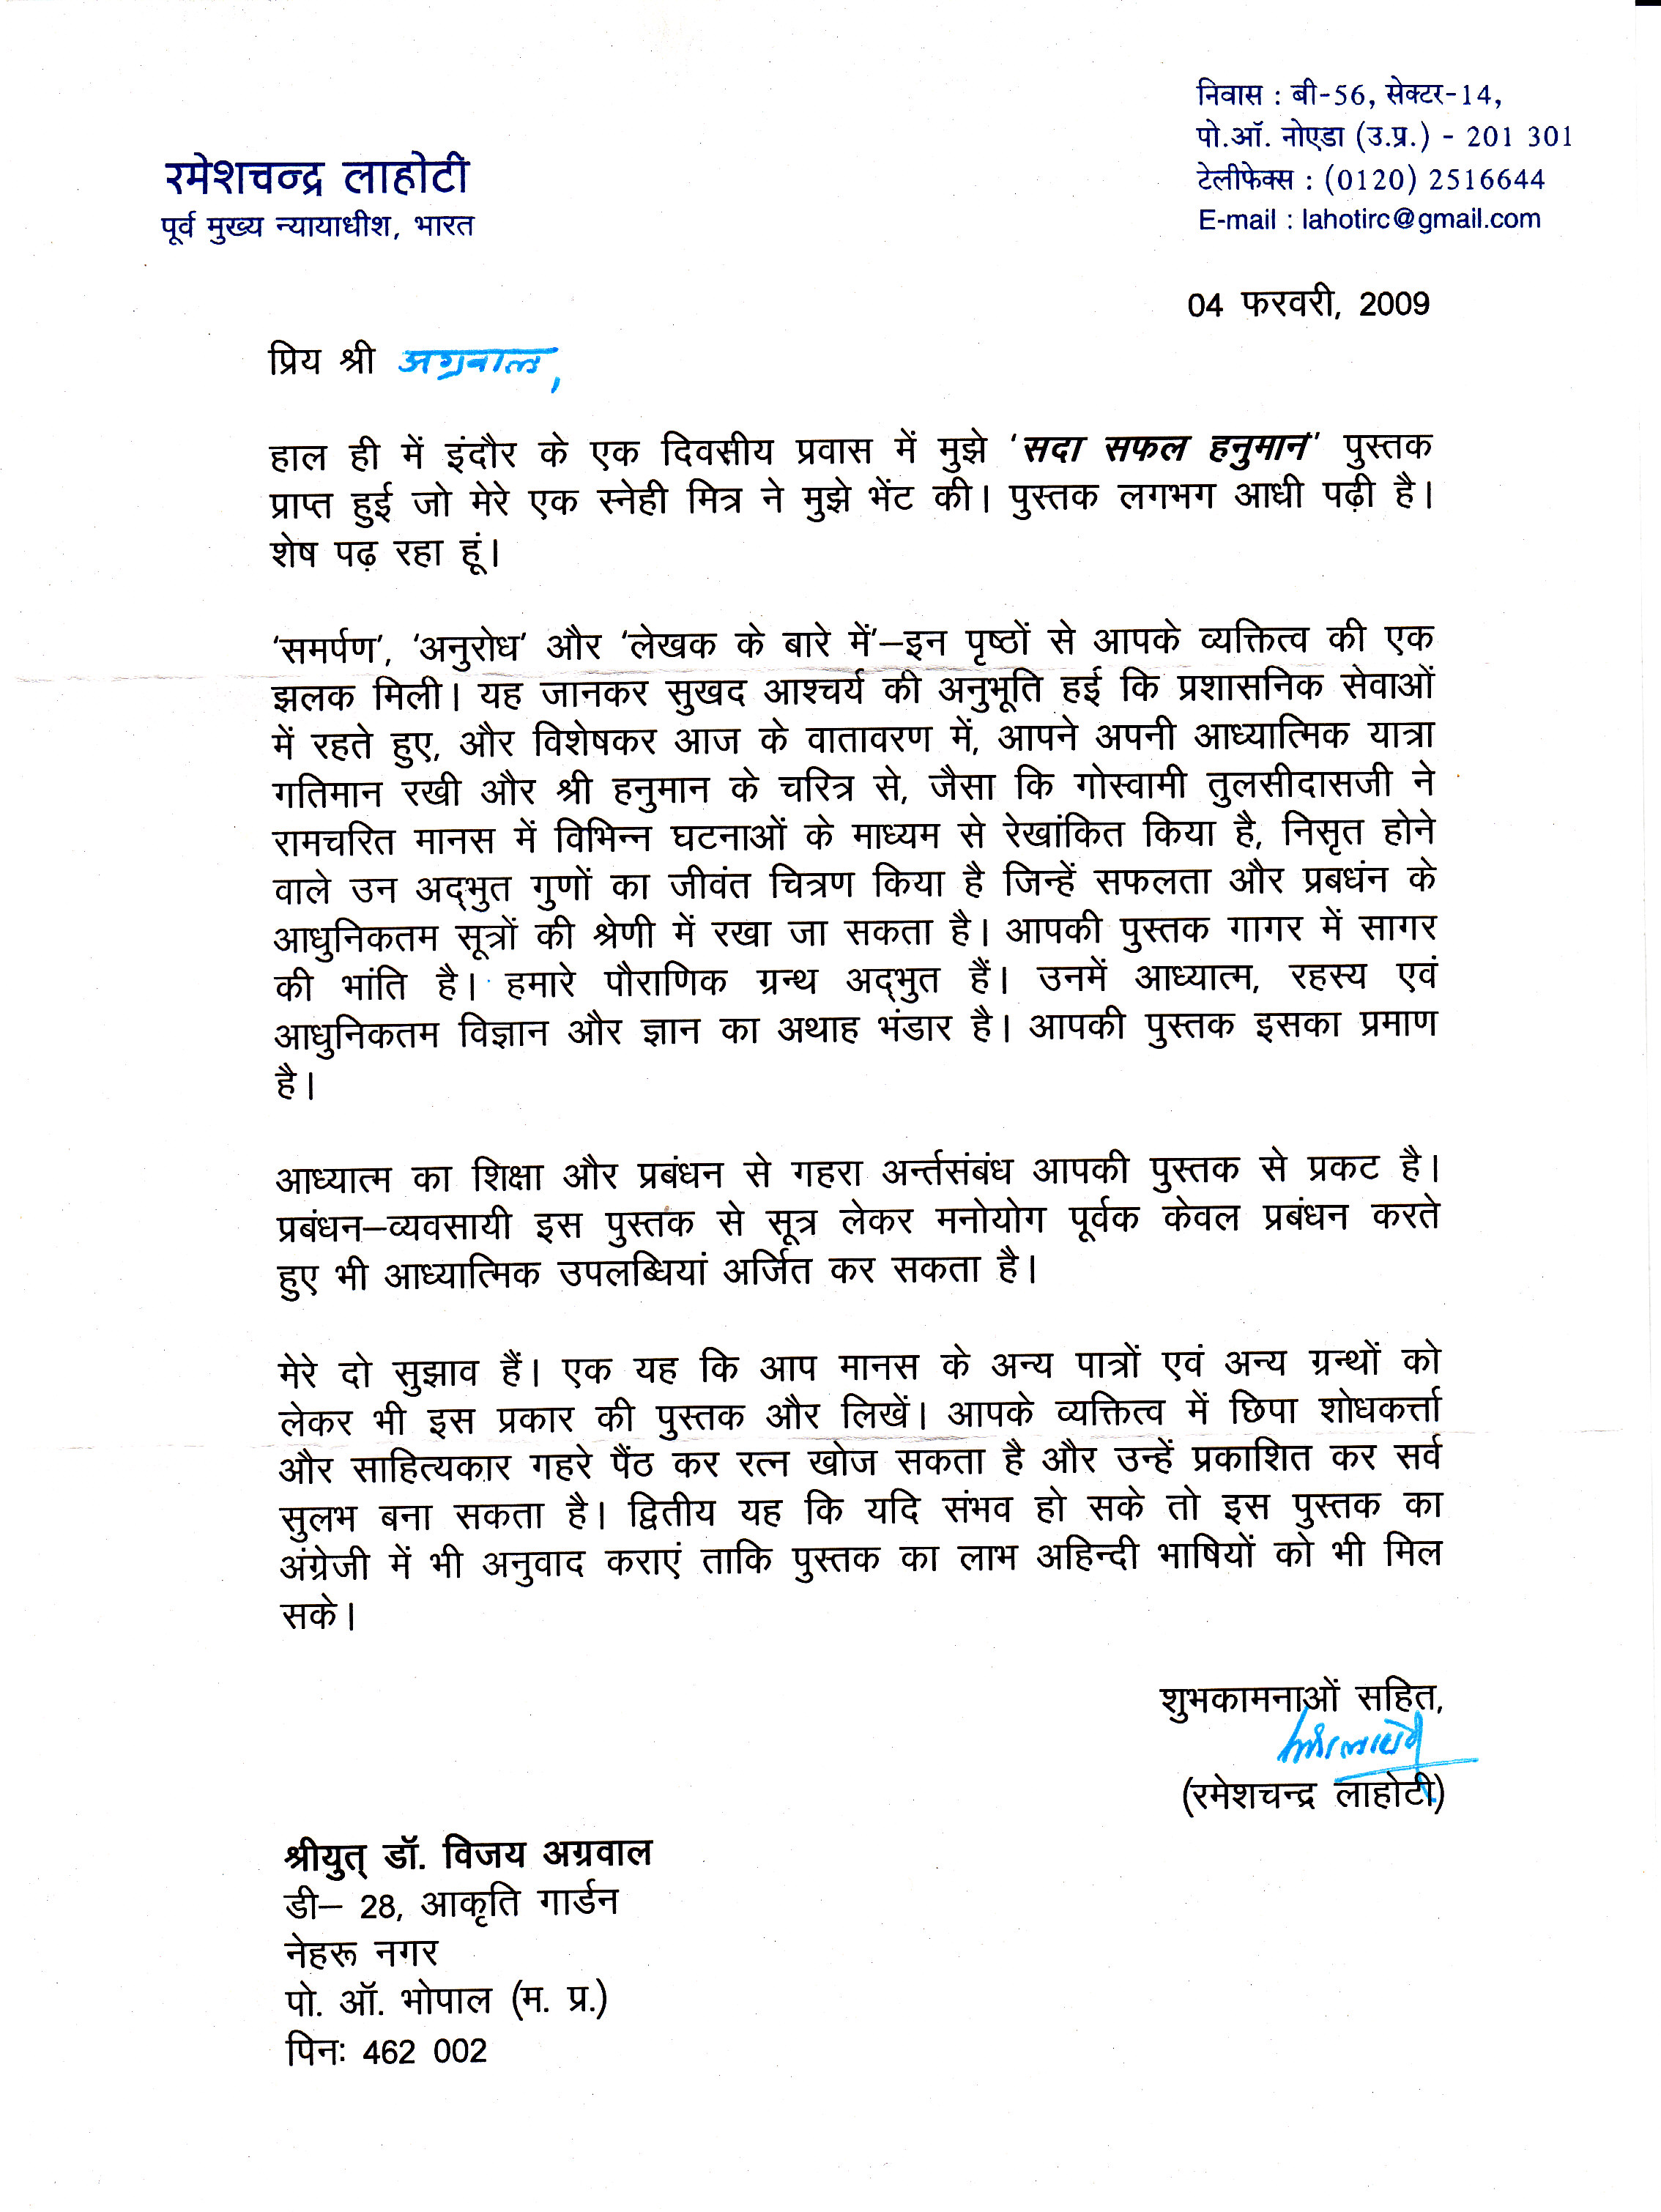 Letter by former Chief Justice of Supreme Court India